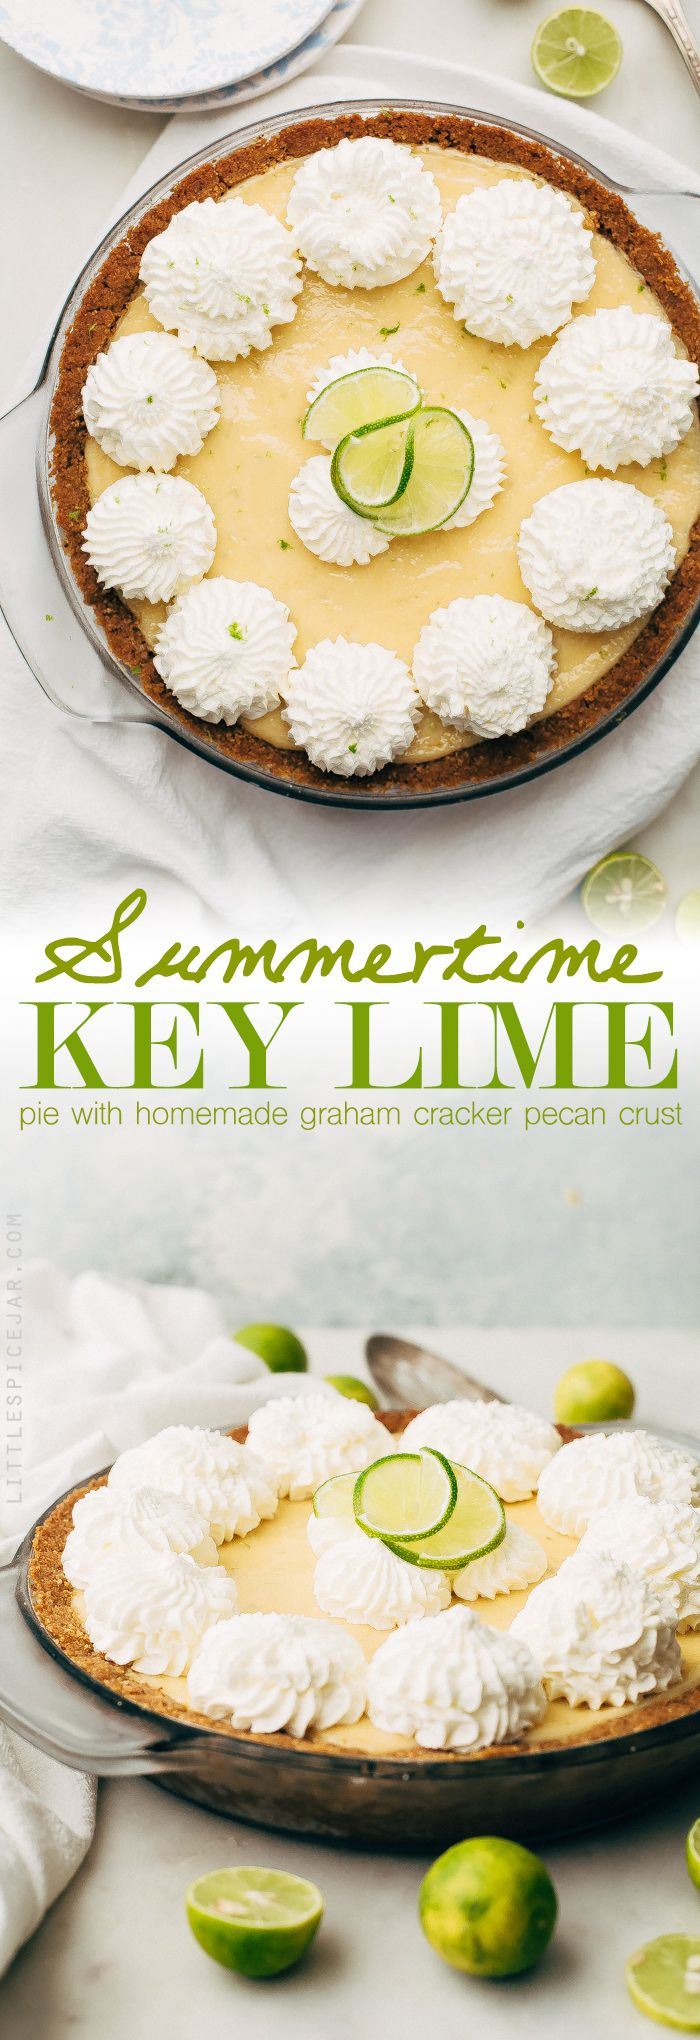 Homemade key lime pie with homemade graham cracker crust. I use 2 special ingredients in my crust that gives my key lime pie an irresistible flavor!